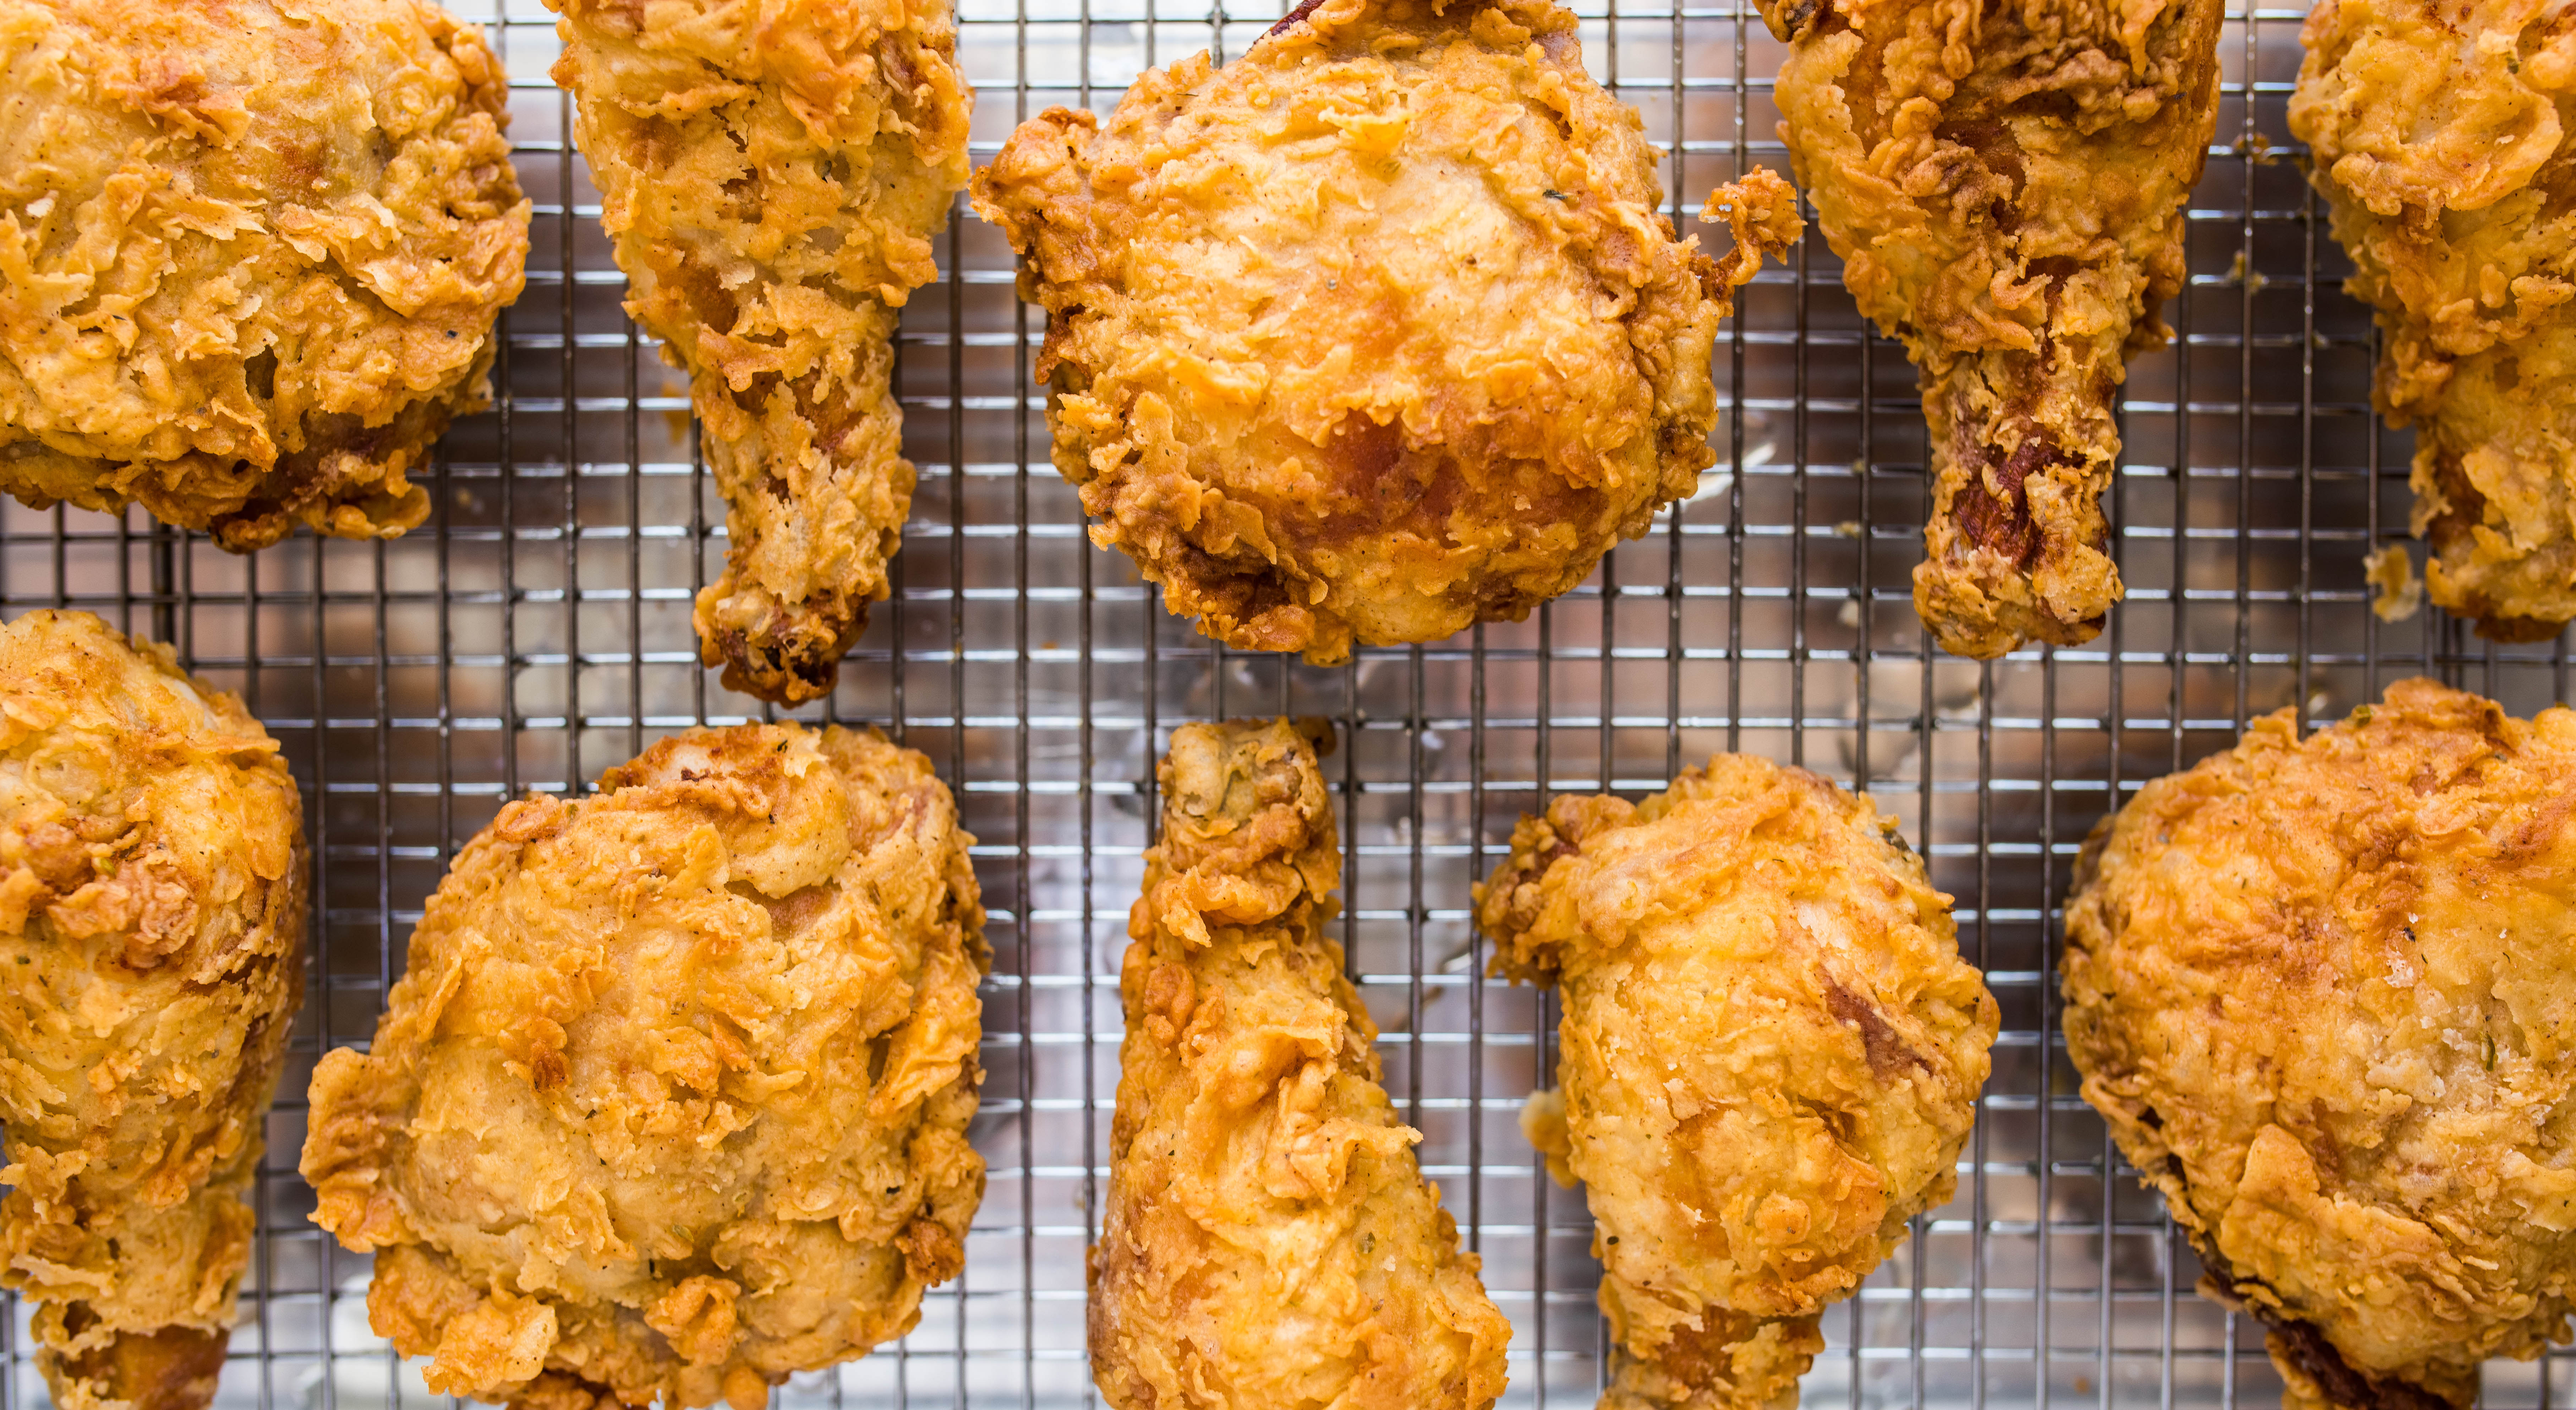 ... both the South and my Northern home. Maple Buttermilk Fried Chicken